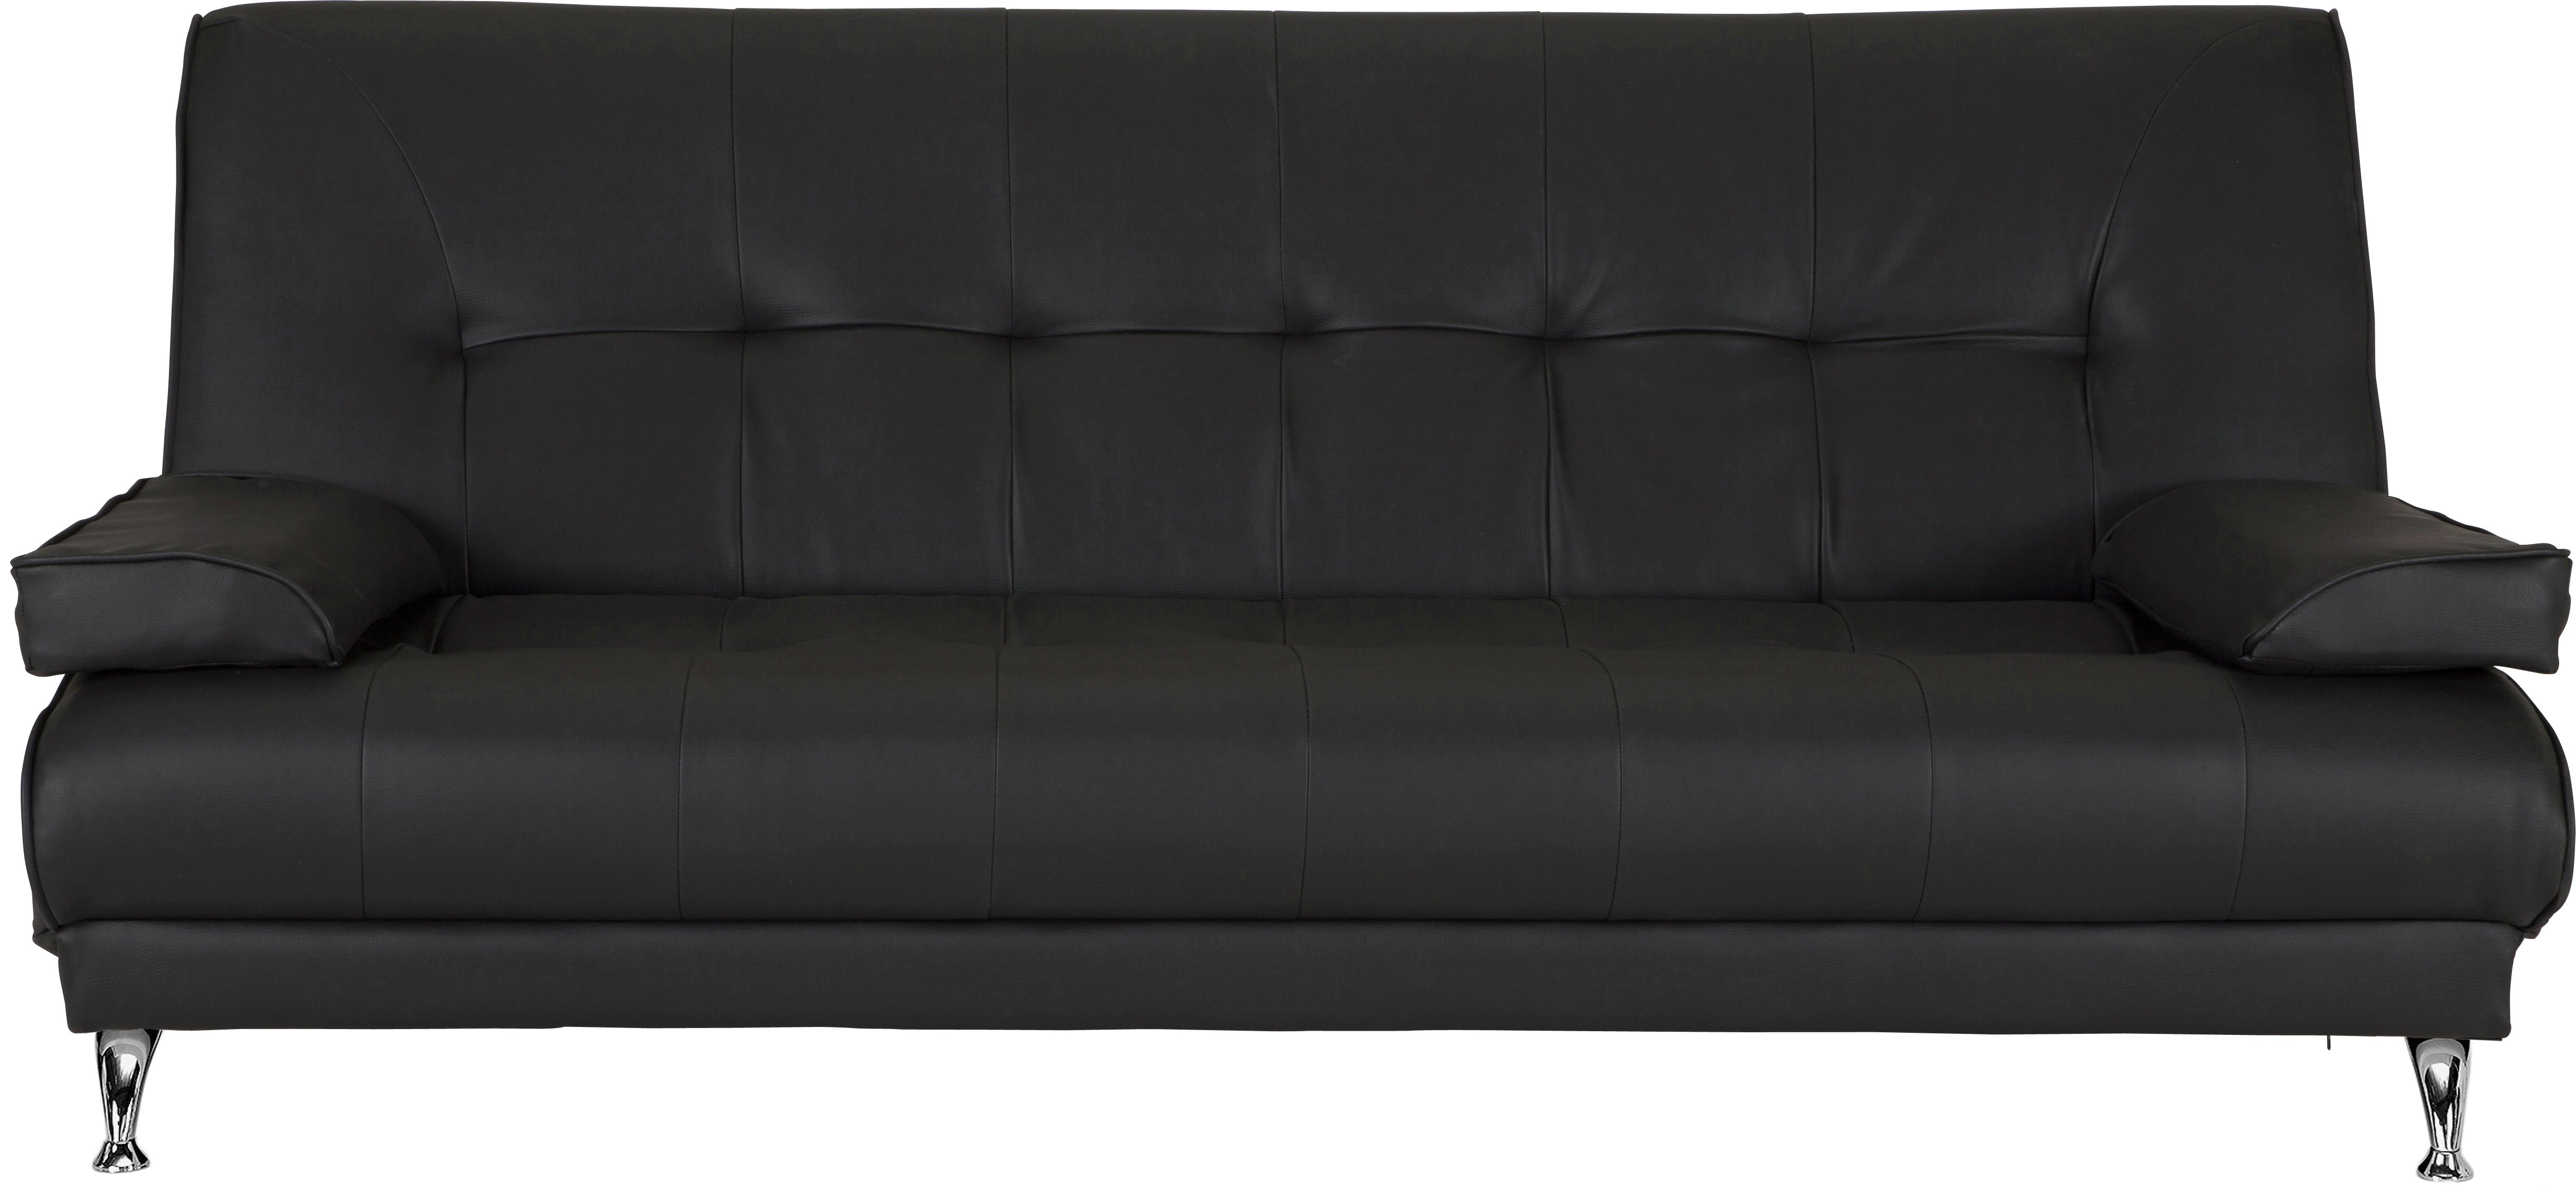 leather sofa cleaner argos jackson furniture belmont sale on sicily 2 seater effect clic clac